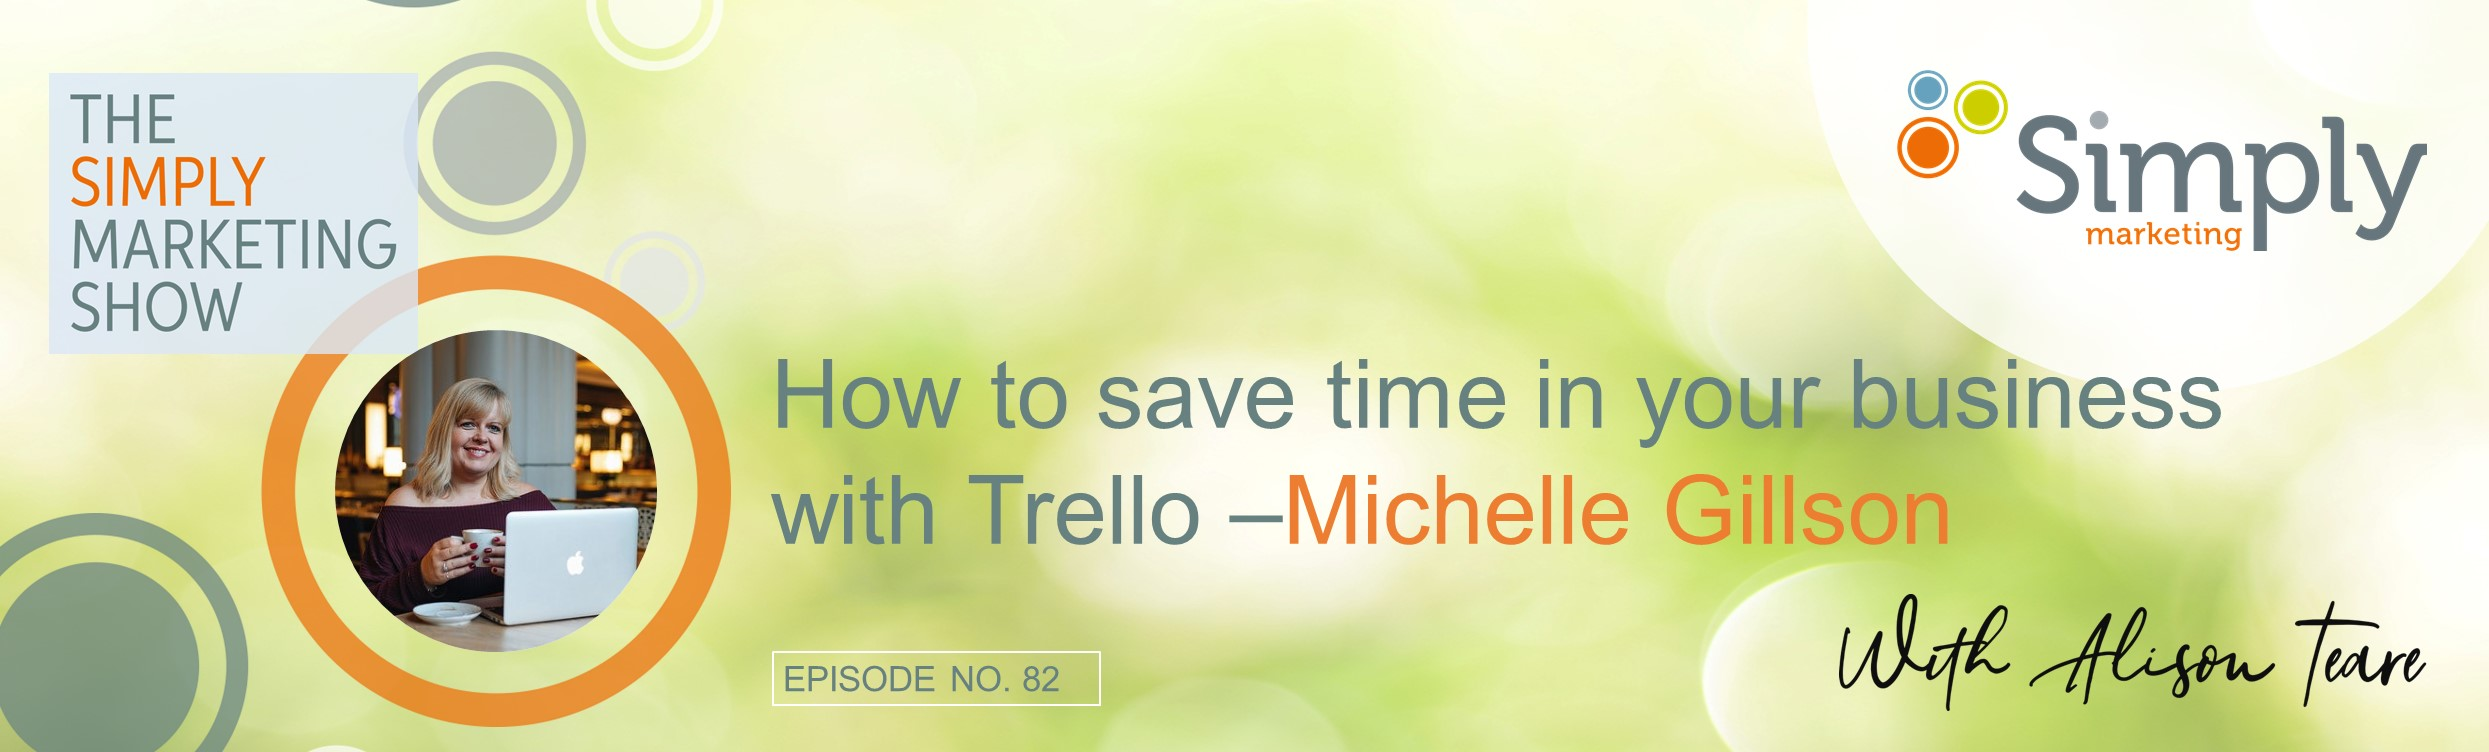 Save time with trello